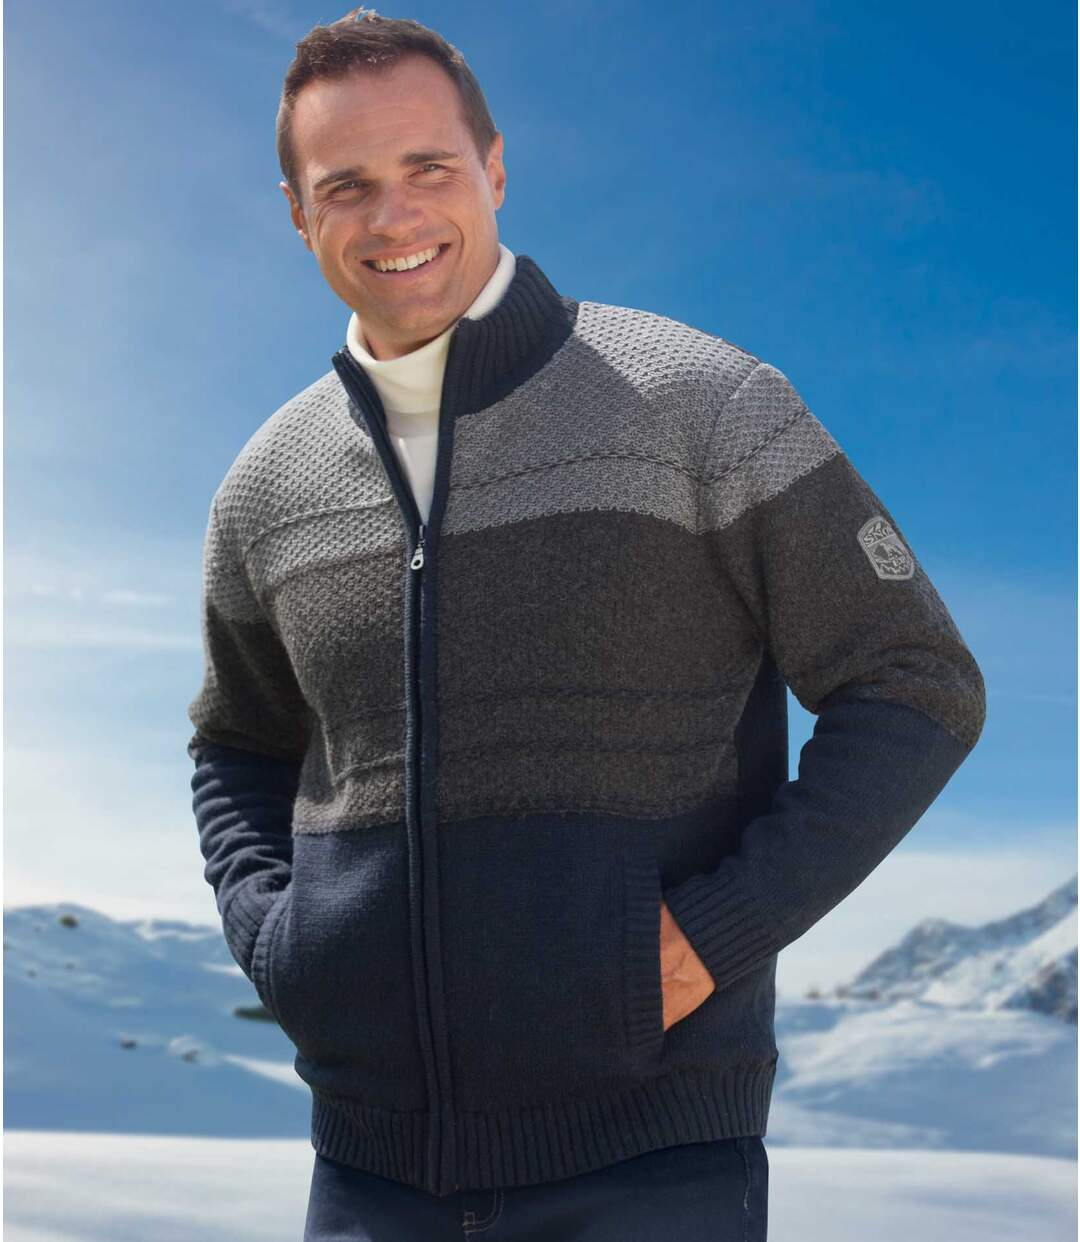 Men's Full Zip Knit Jacket with Microfleece Lining